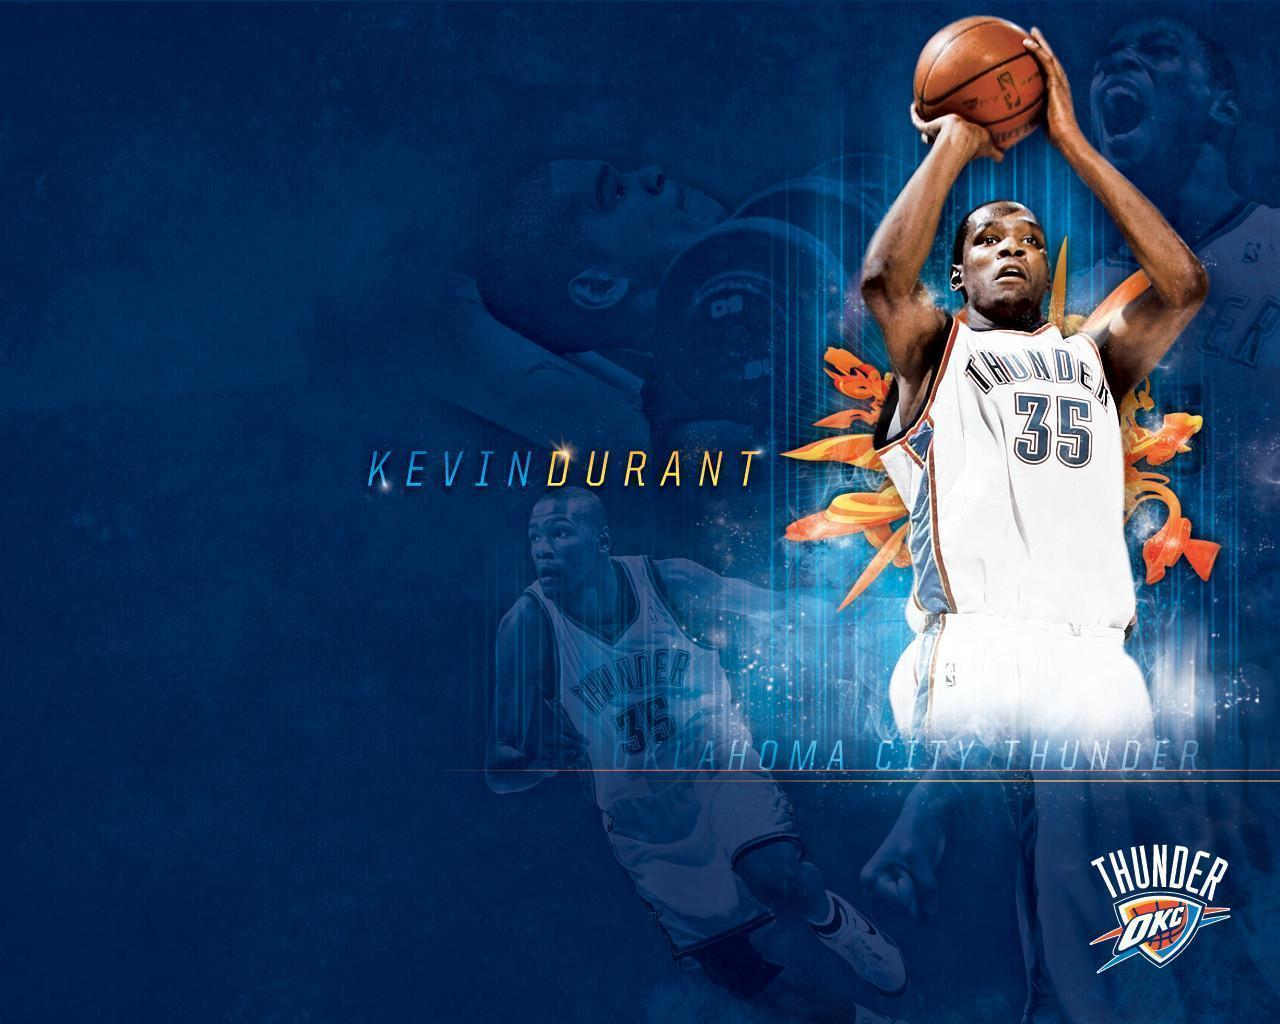 Kevin Durant Wallpapers 2016 1280x1024